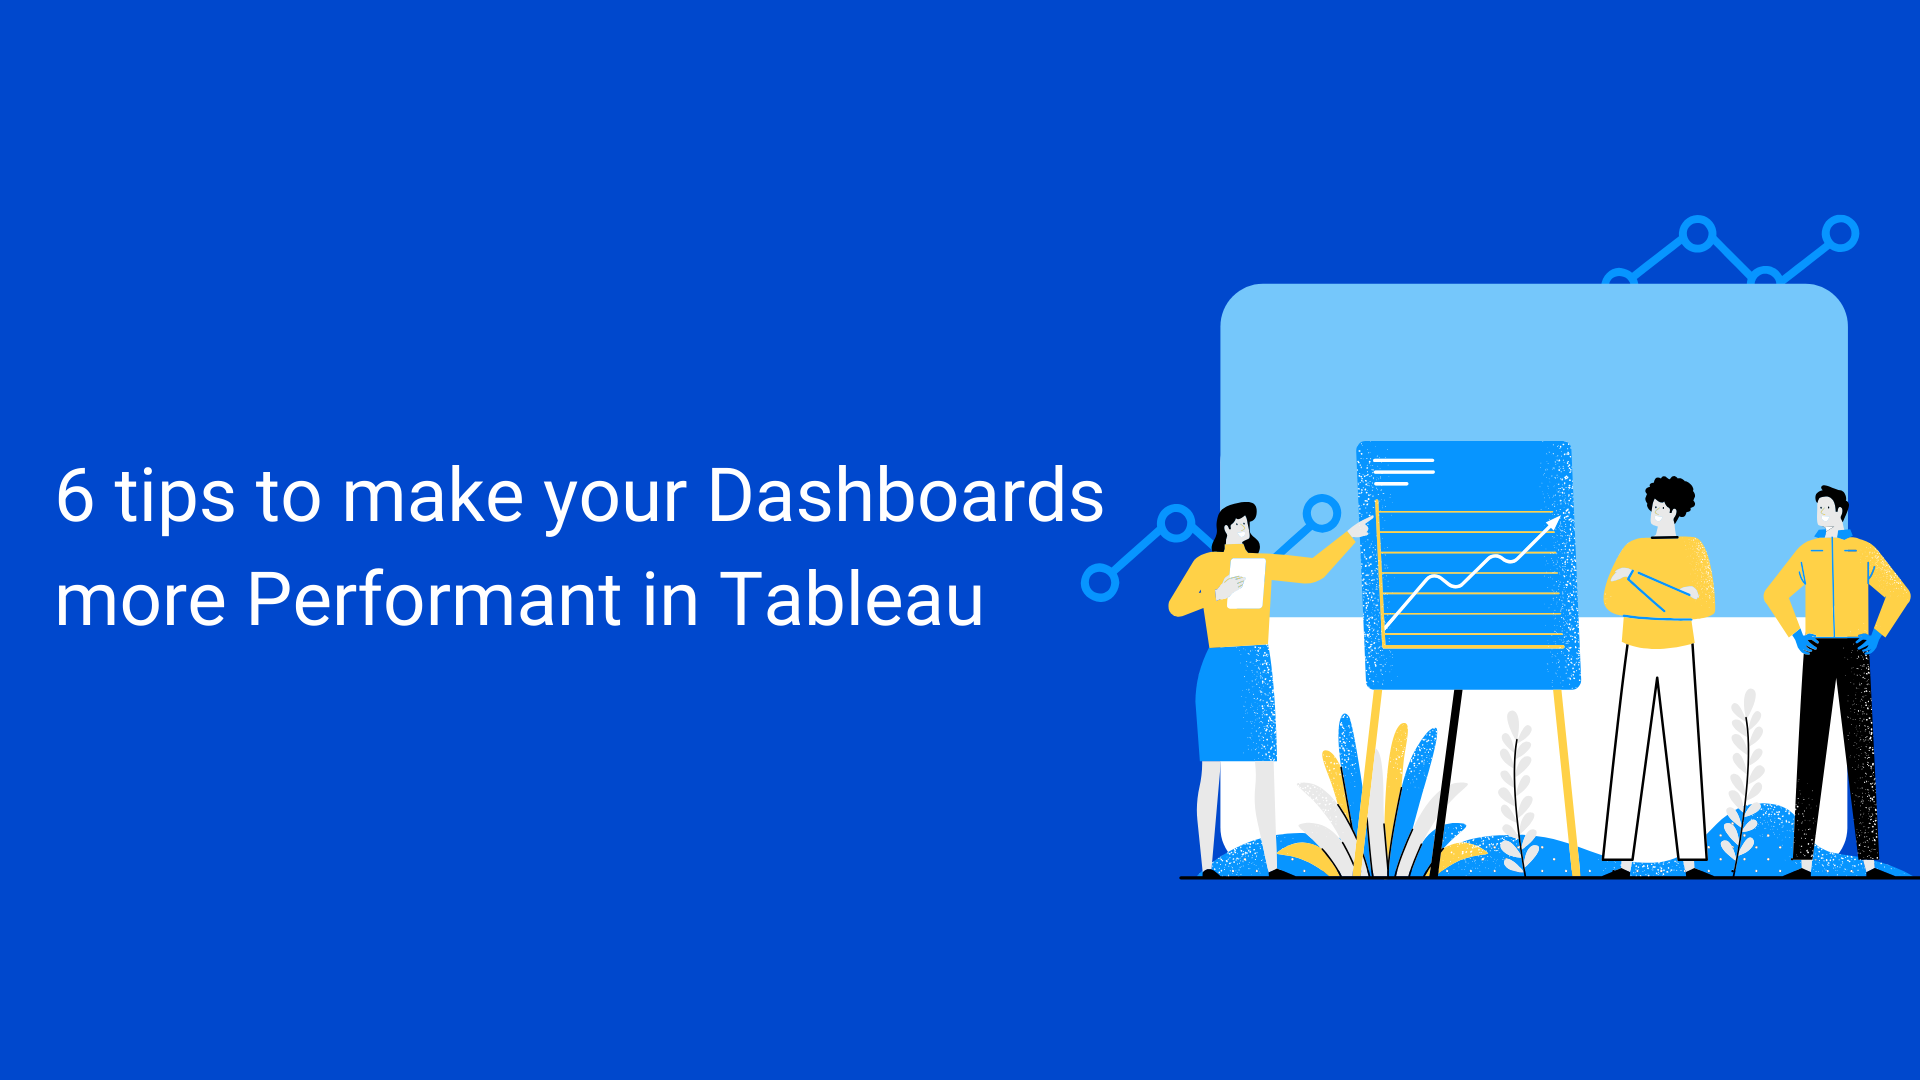 6 tips to make your Dashboards more Performant in Tableau